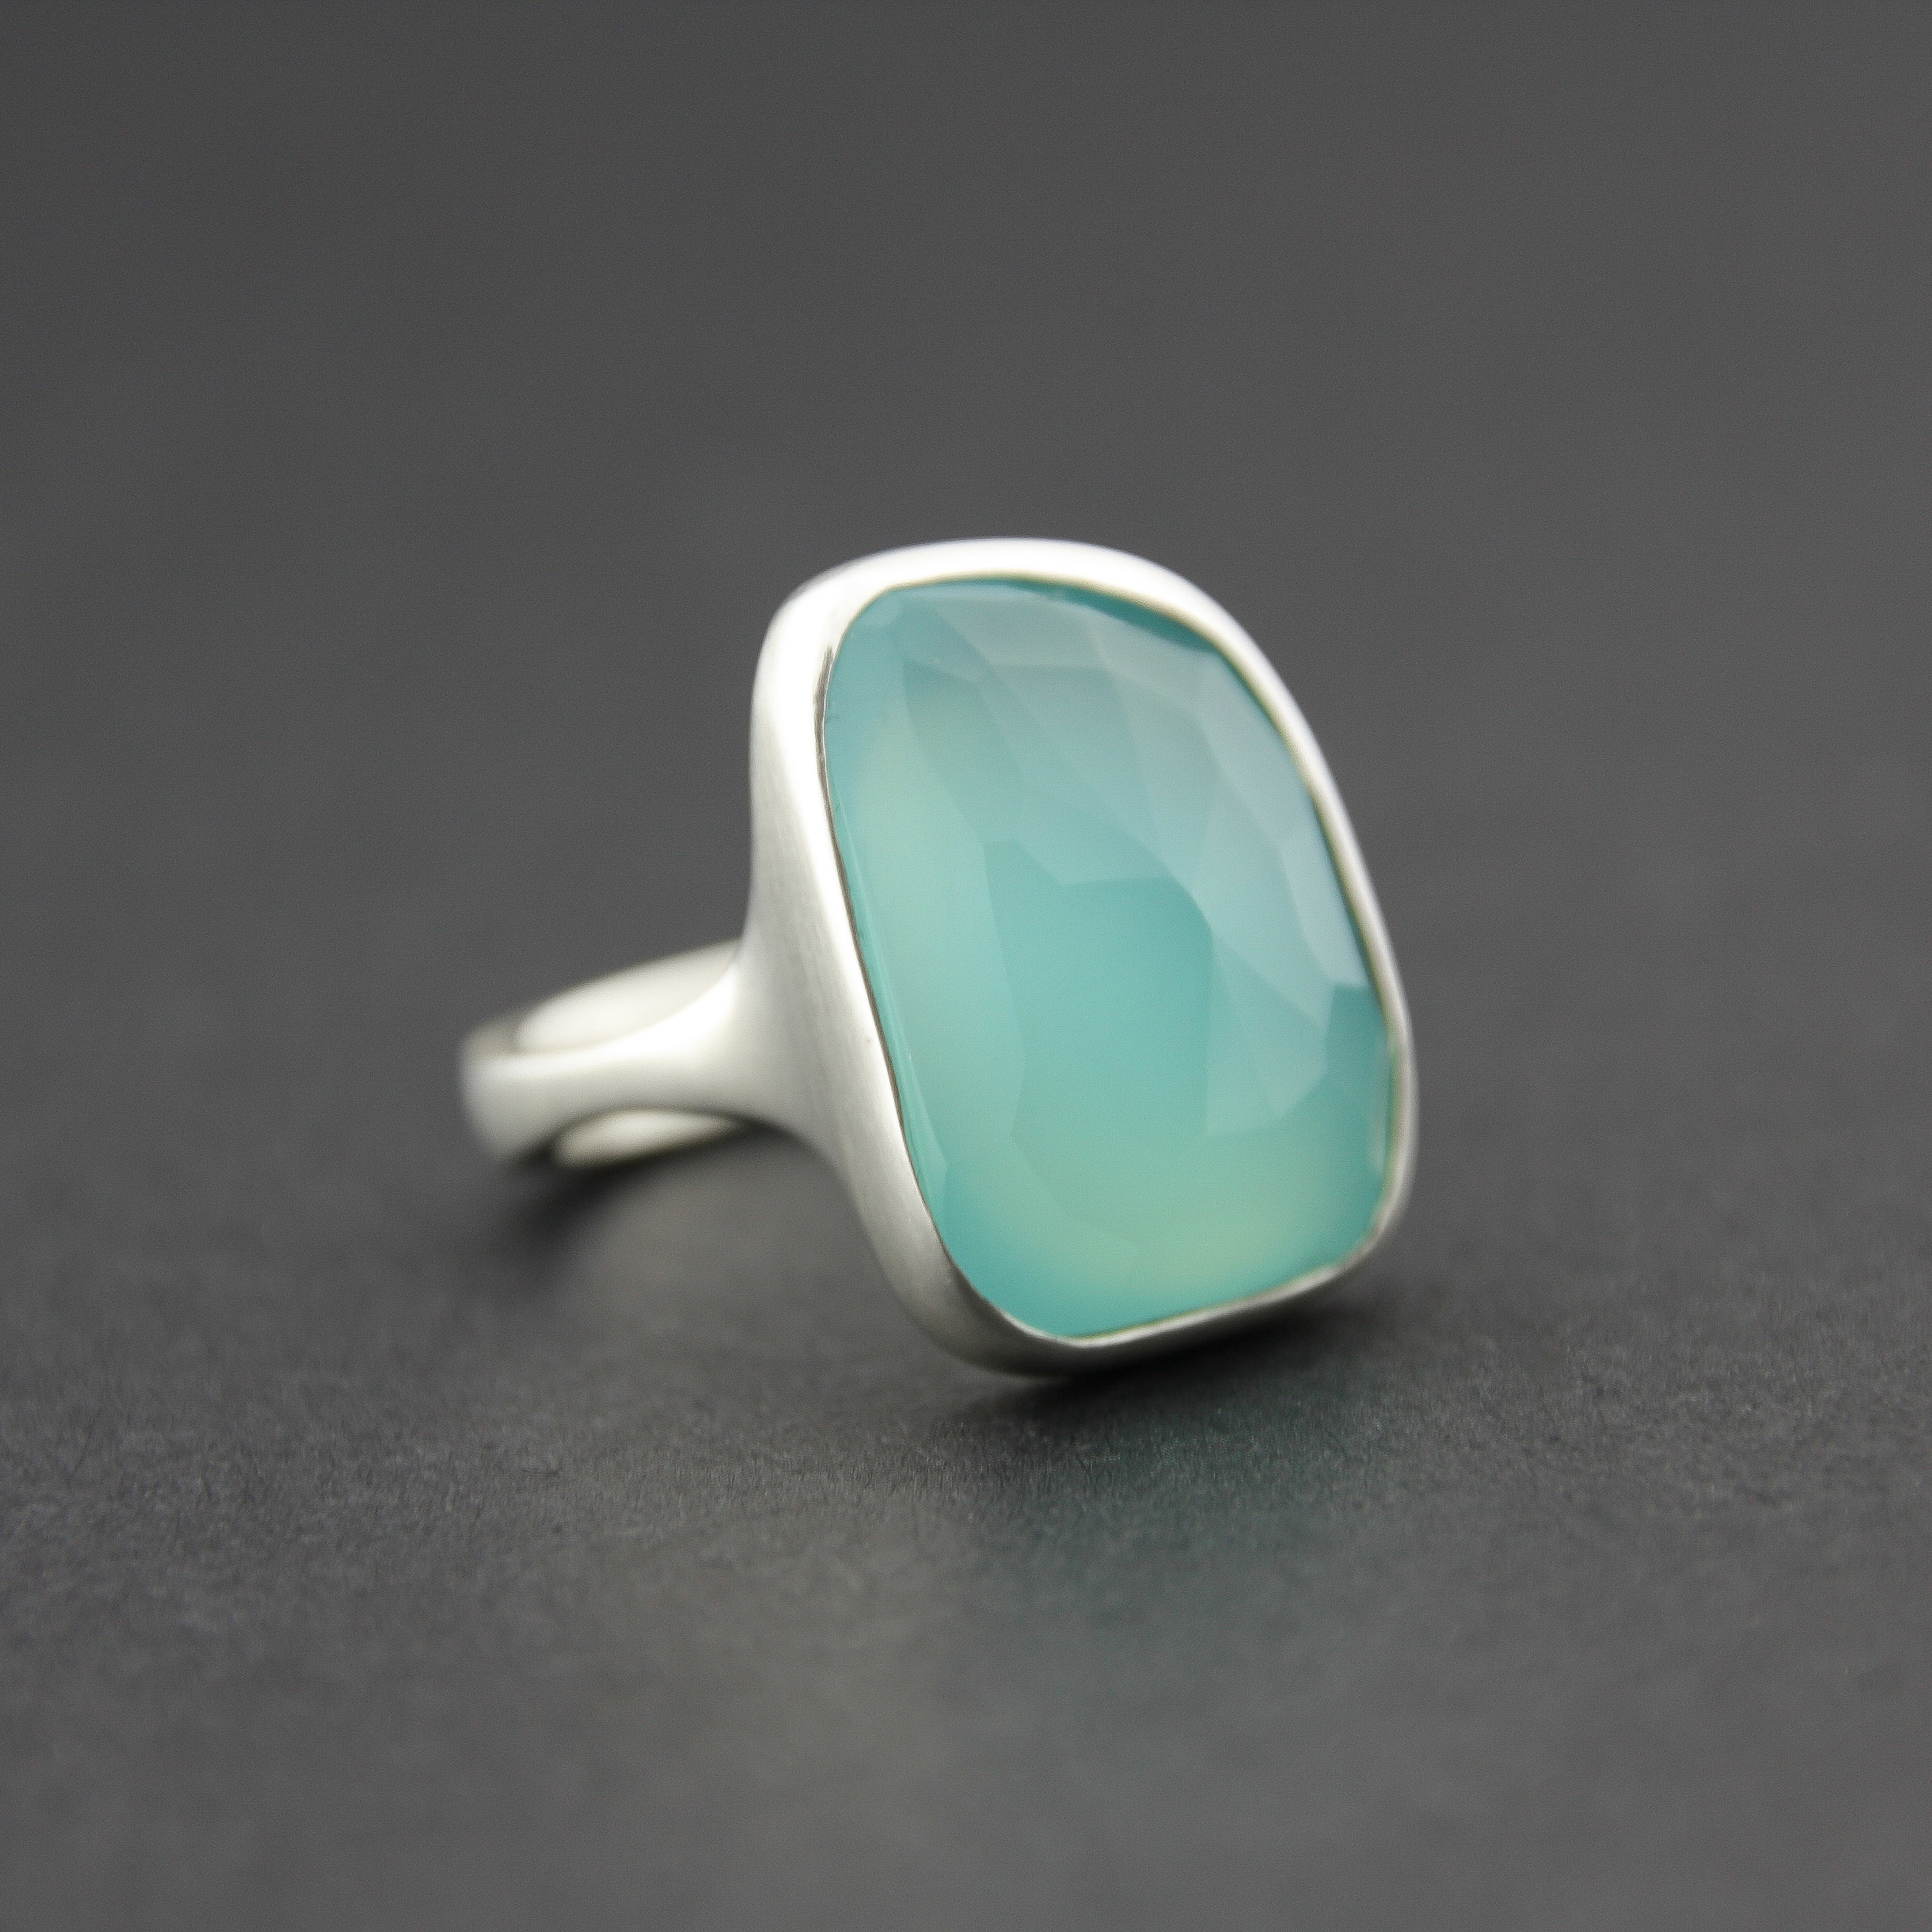 Leonie Simpson Jewellery rose cut chalcedony stone set ring sterling silver